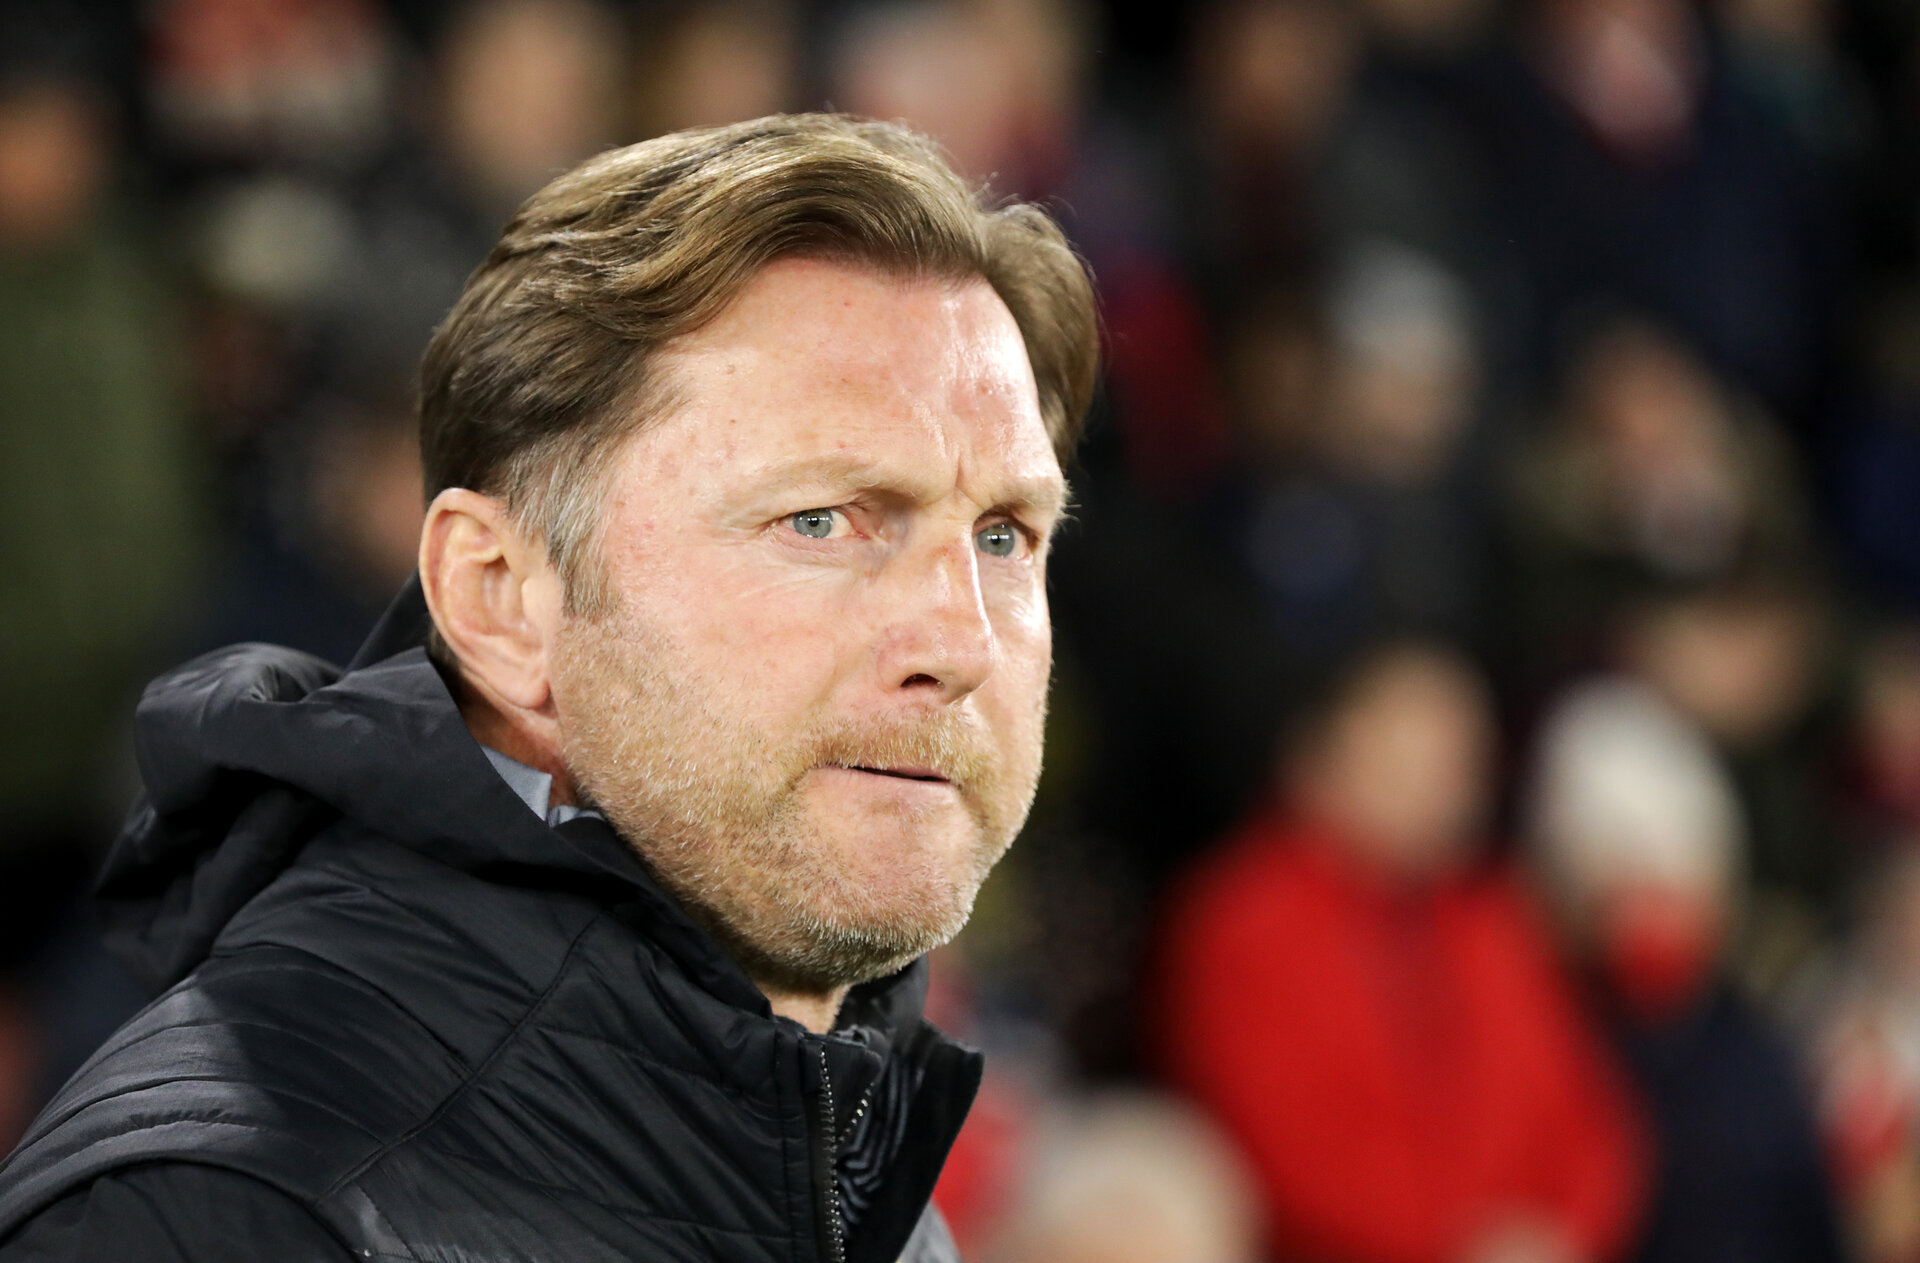 SOUTHAMPTON, ENGLAND - JANUARY 30: Ralph Hasenhuttl during the Premier League match between Southampton FC and Crystal Palace FC at St Mary's Stadium on January 30, 2019 in Southampton, United Kingdom. (Photo by Chris Moorhouse/ Southampton FC via Getty Images)